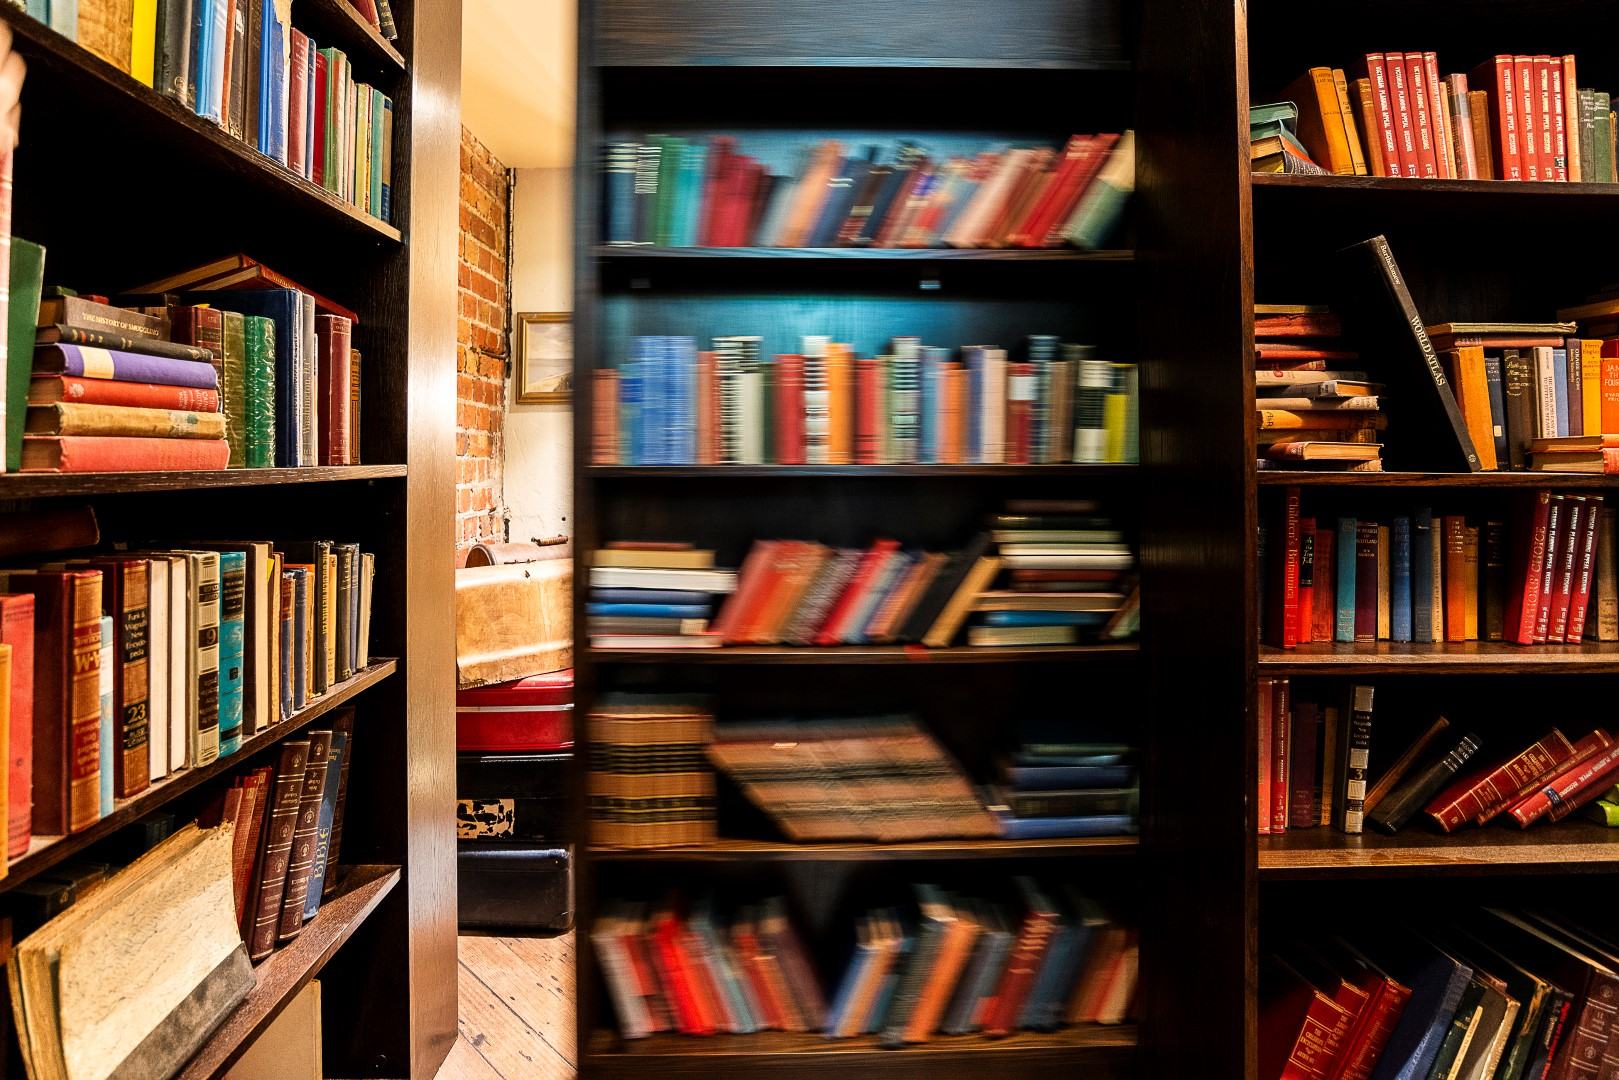 A bookshelf in the middle of a bar